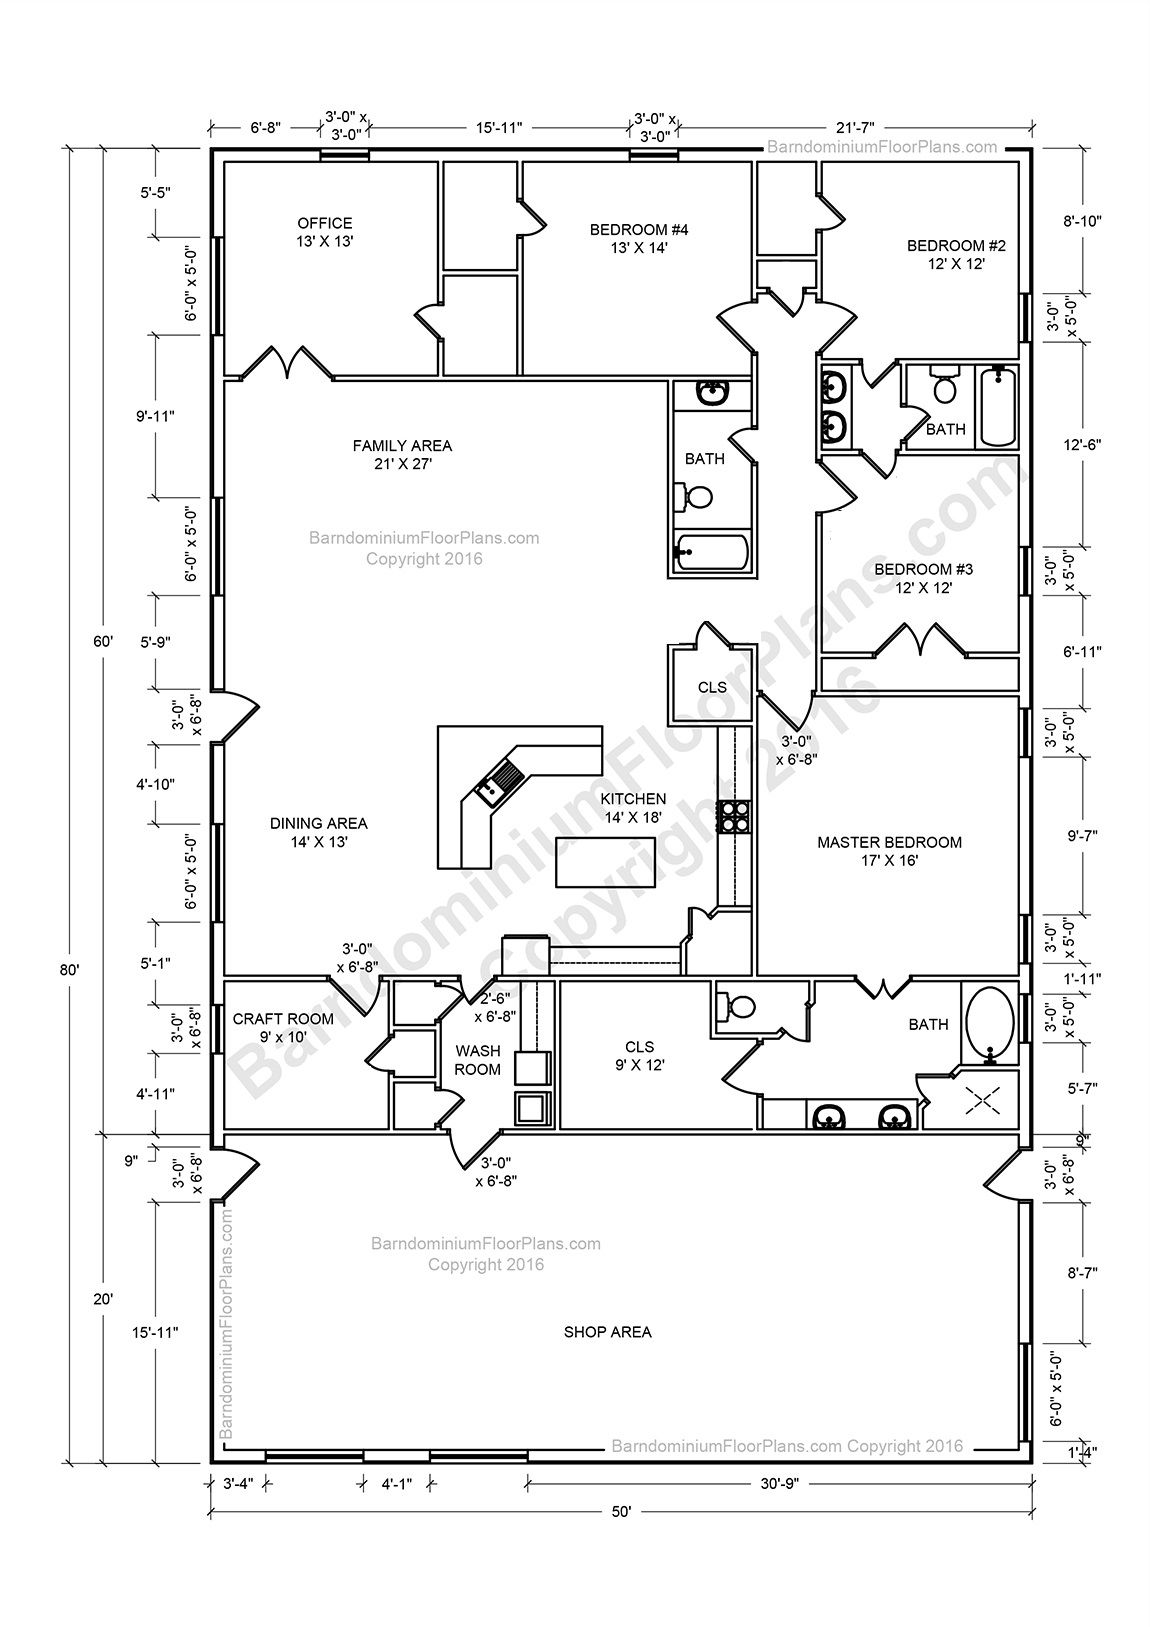 Barndominium Floor Plans Pole Barn House Plans And Metal Barn Homes Barndominium Floor Plans Barn Homes Floor Plans Metal House Plans Barn House Plans